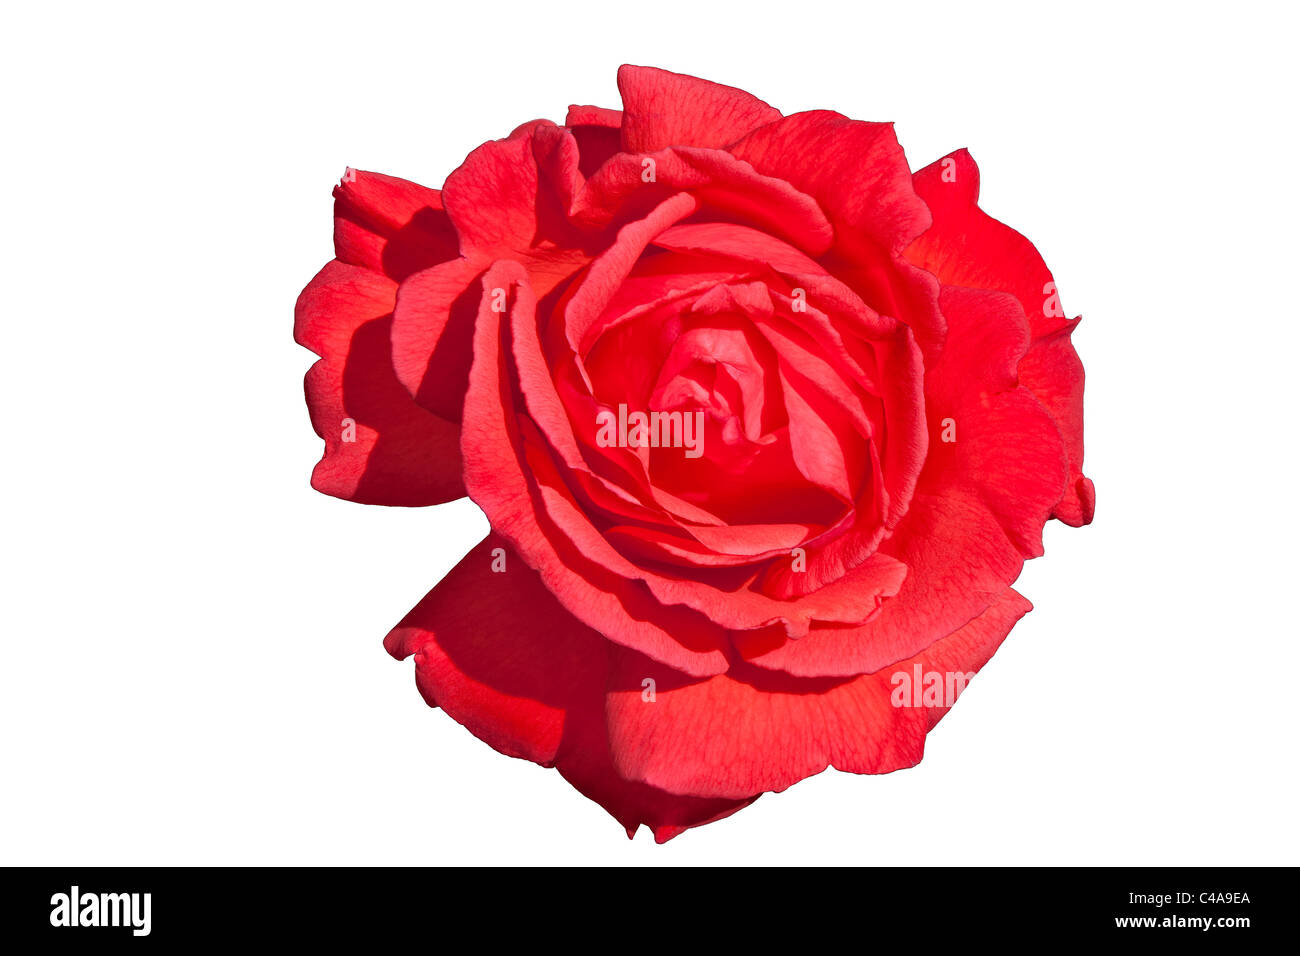 Close-up of red climber rose flower head with petals open - Stock Image